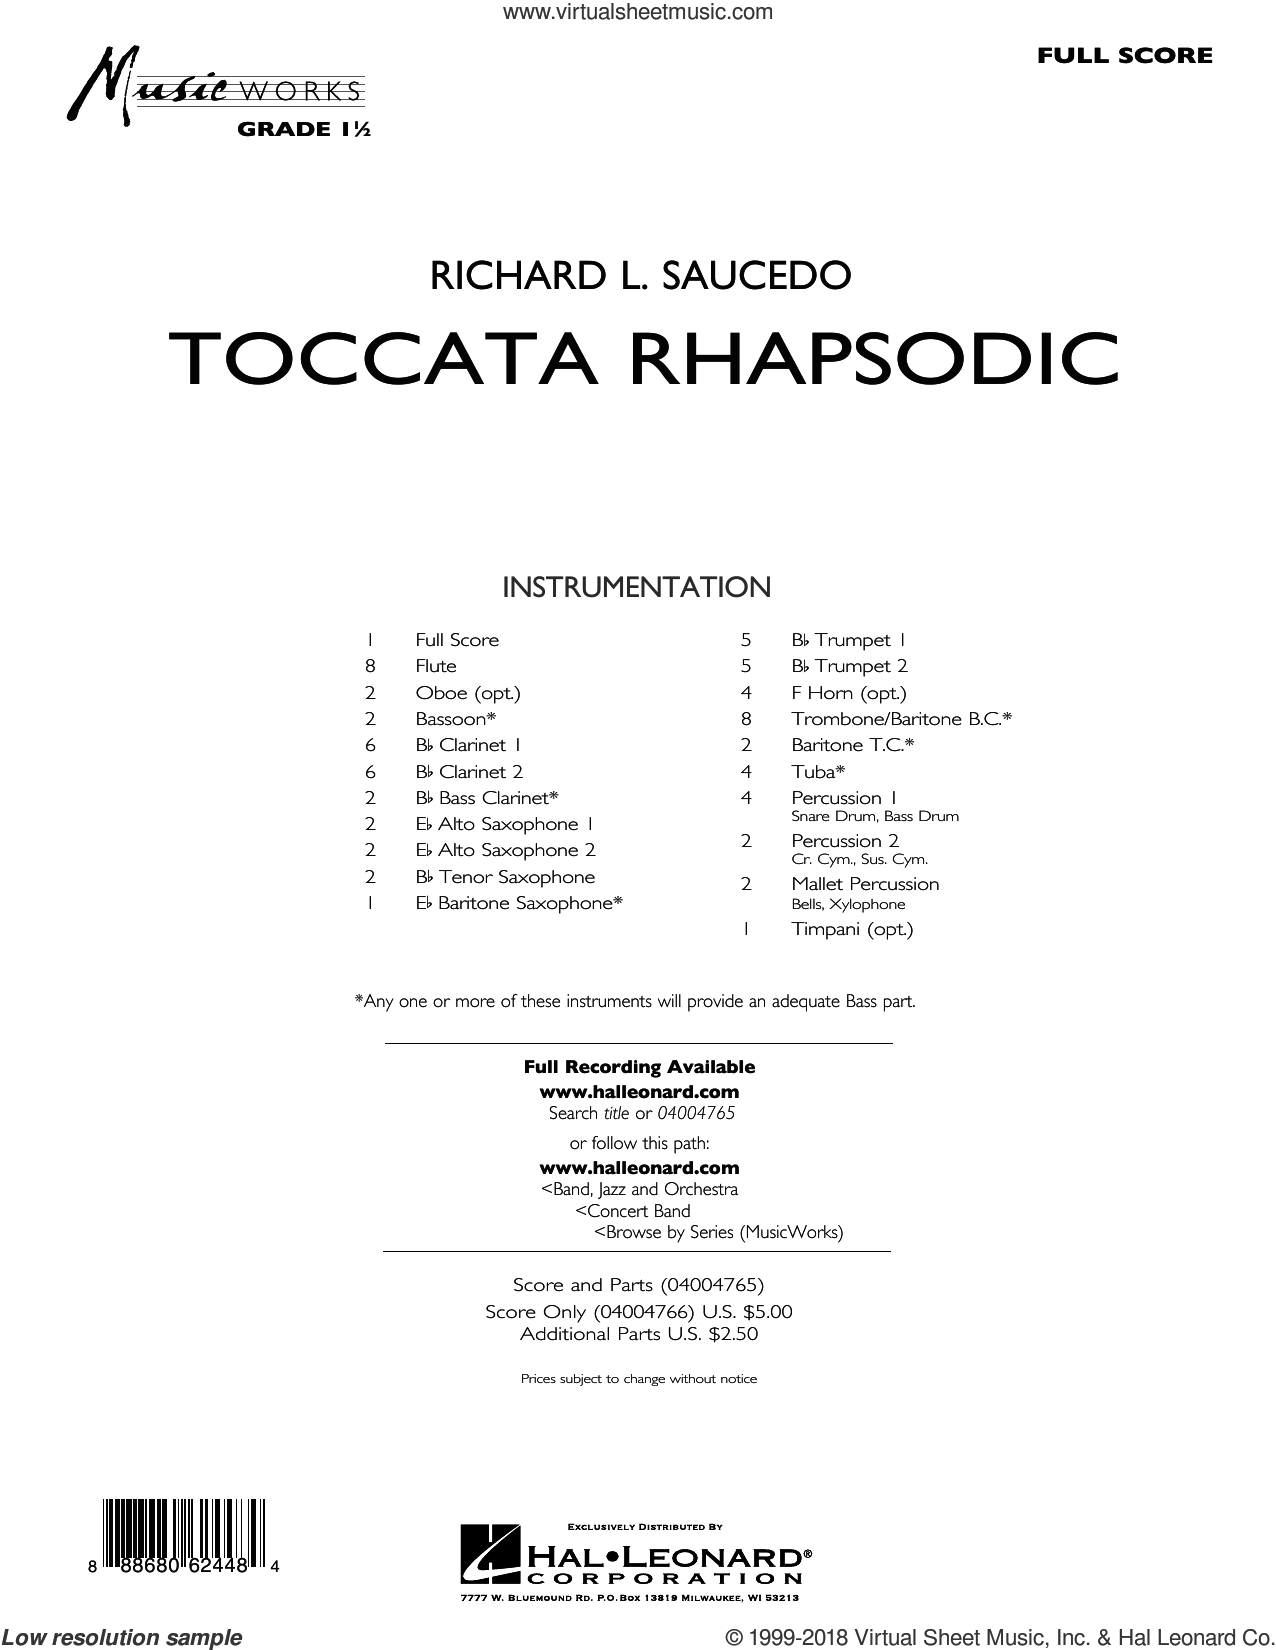 Toccata Rhapsodic (COMPLETE) sheet music for concert band by Richard L. Saucedo, intermediate skill level